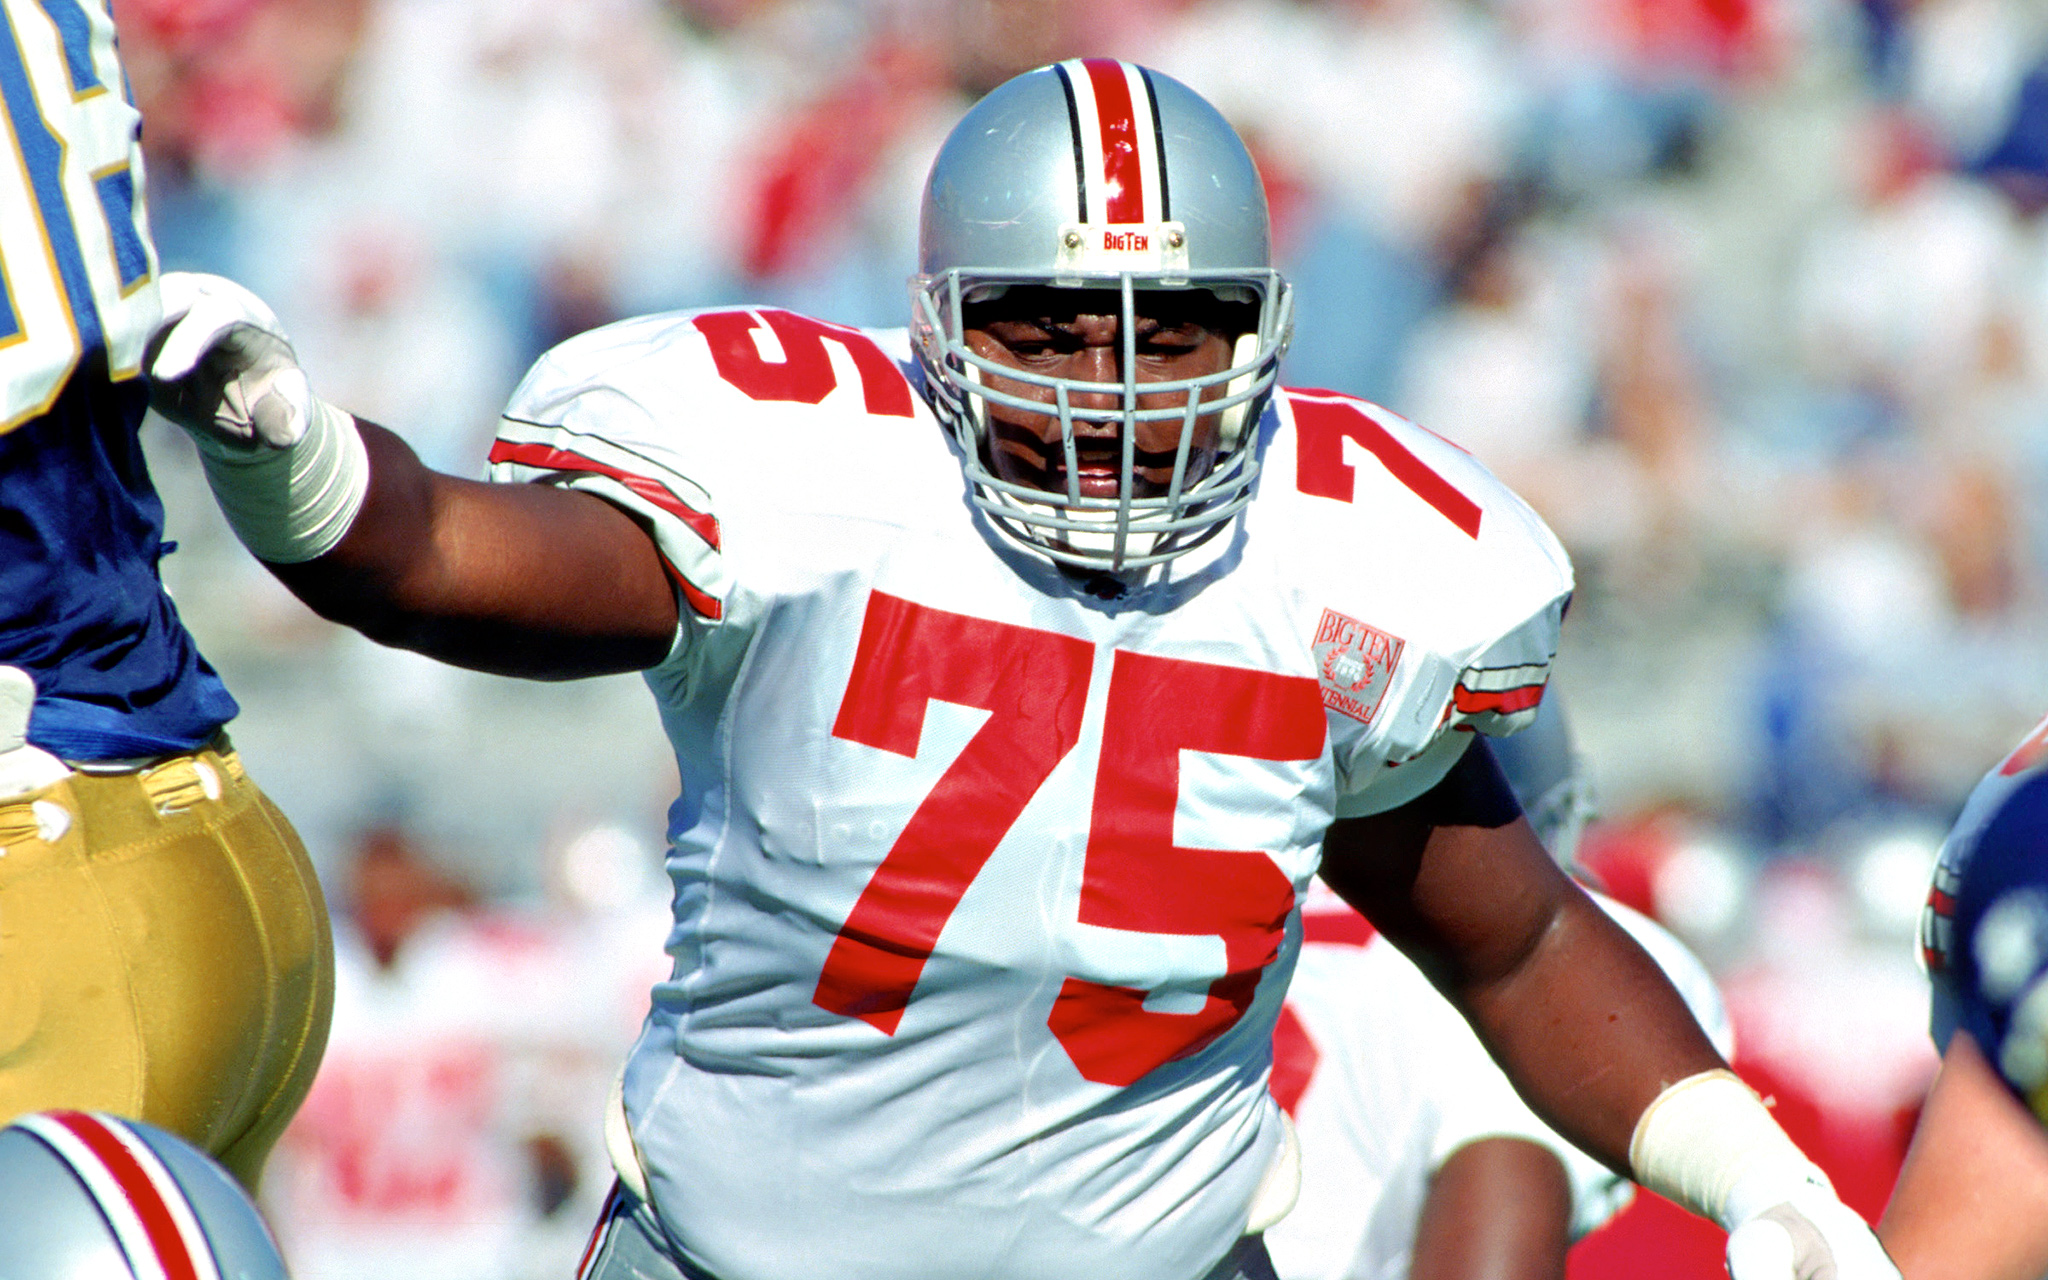 Army Vs Navy Football >> Orlando Pace, Ohio State OT - 2013 Hall of Fame Class photo gallery - ESPN